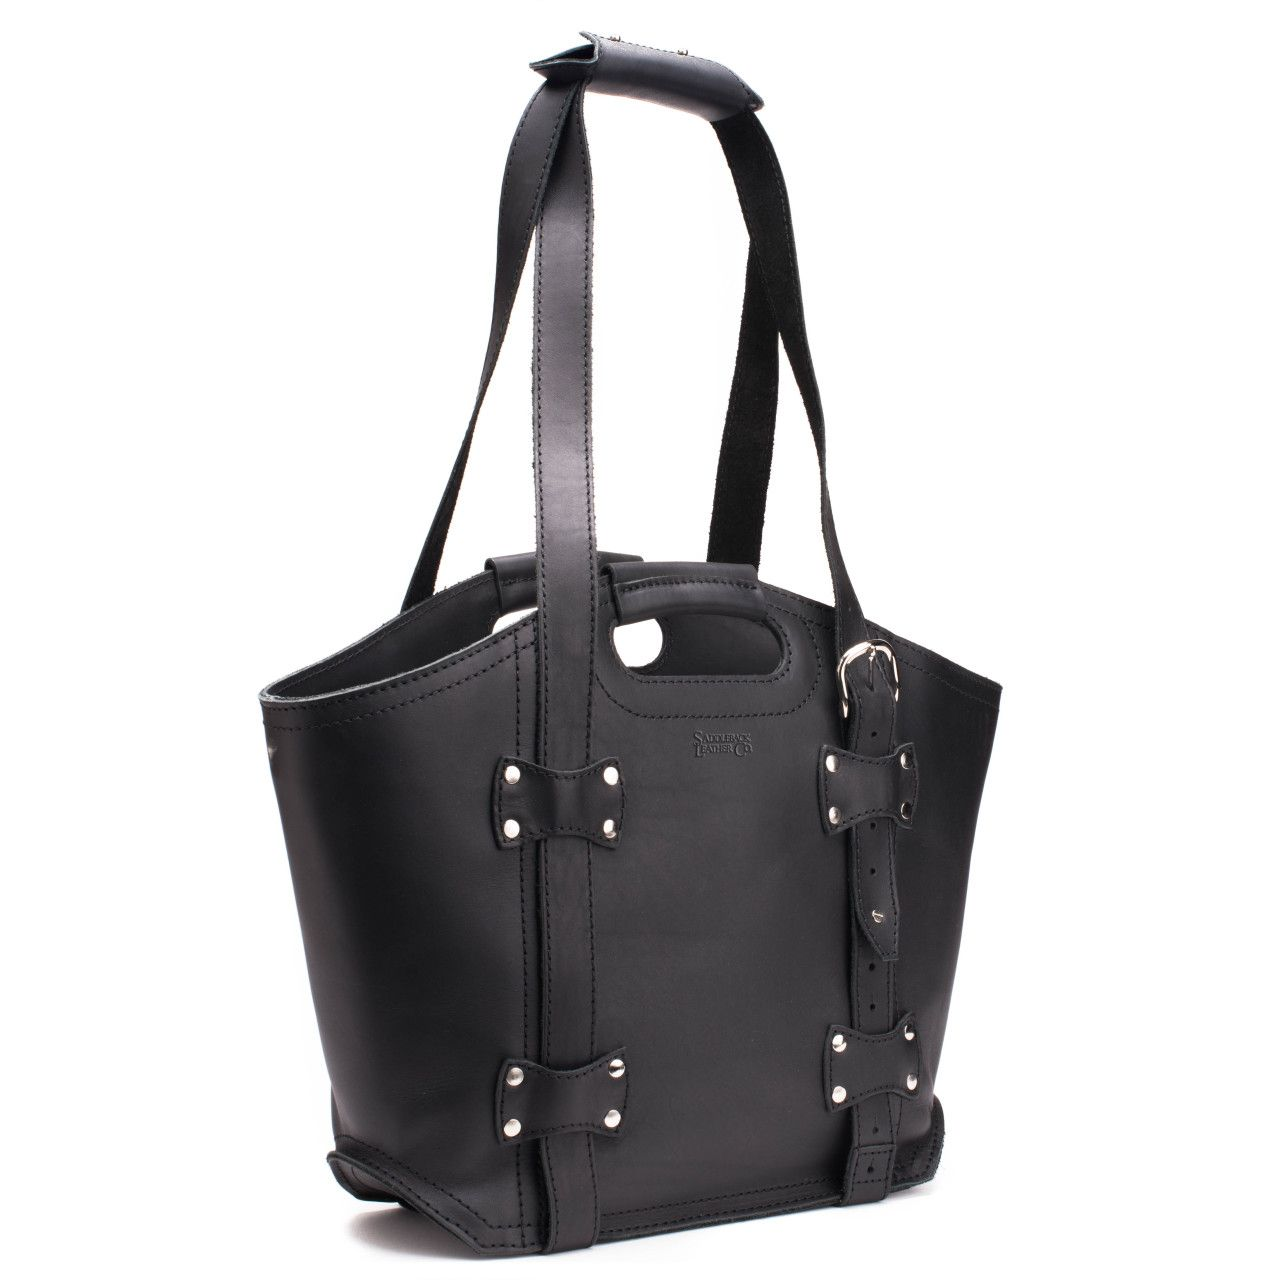 premium leather tote bag large in black leather